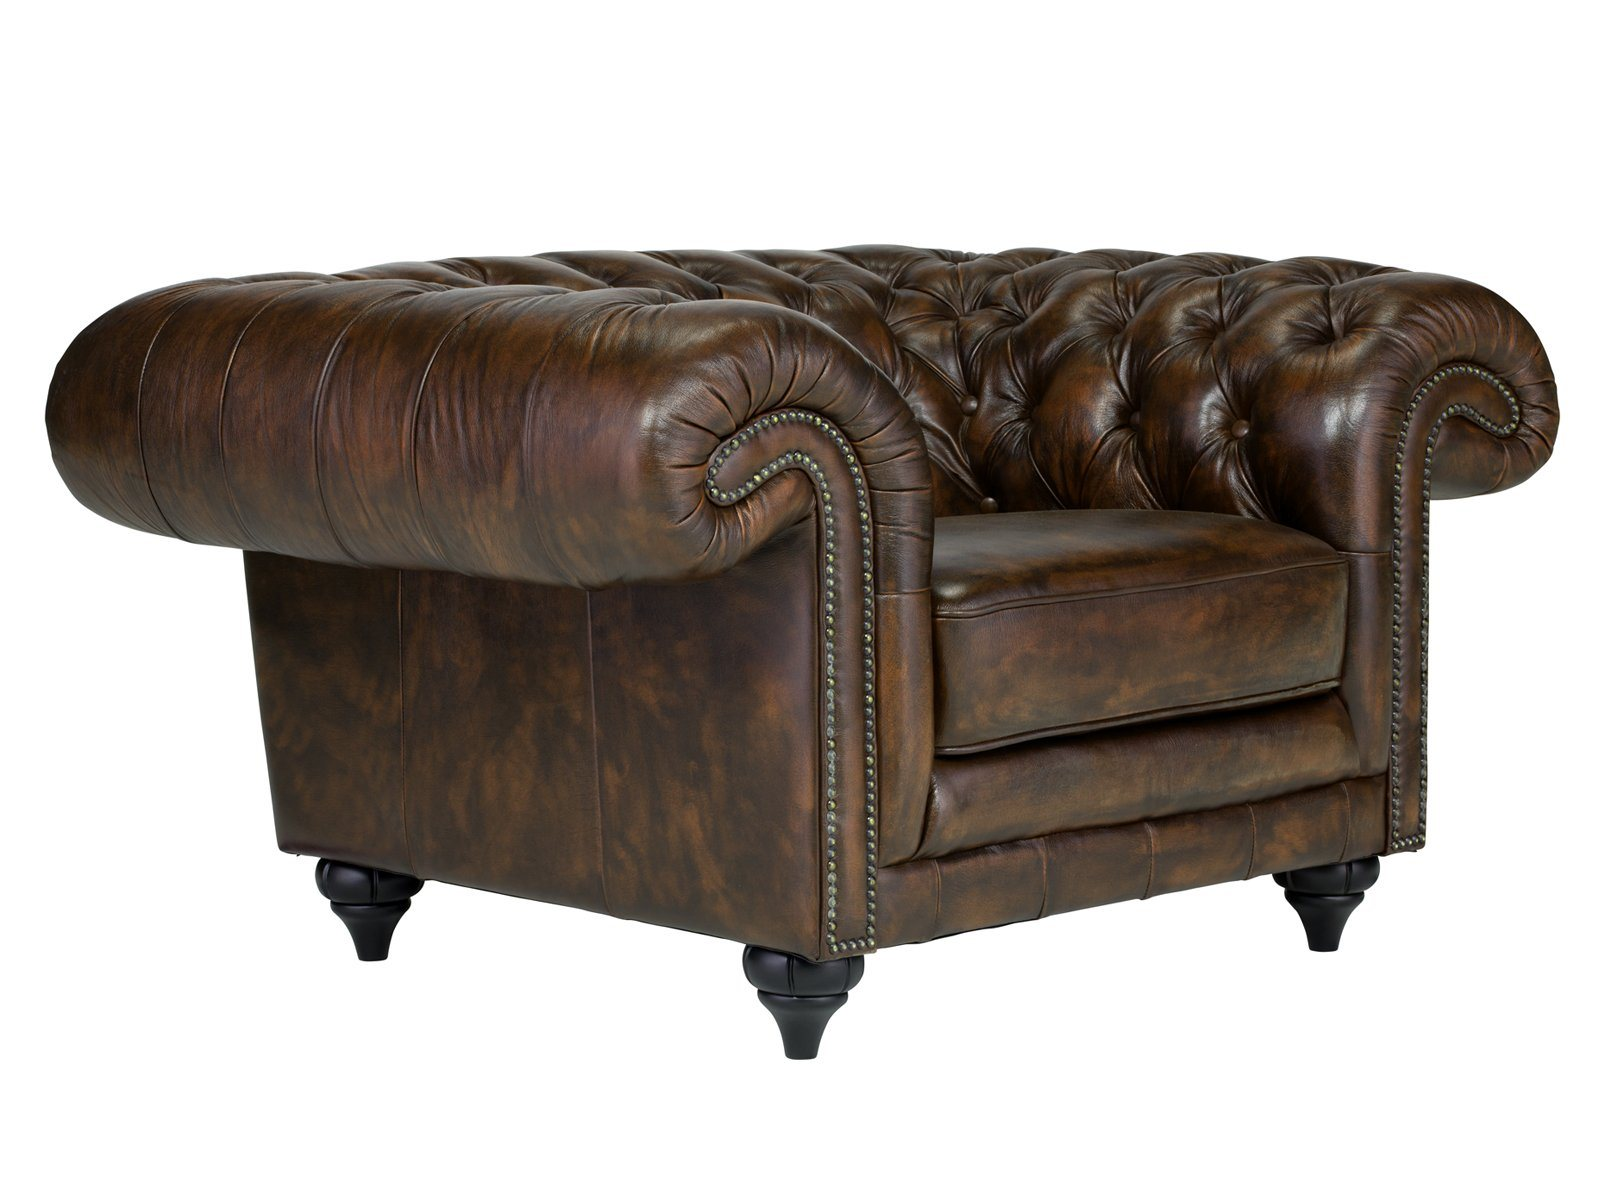 Massivum Sessel Massivum Sessel Aus Echtleder Chesterfield Clifton